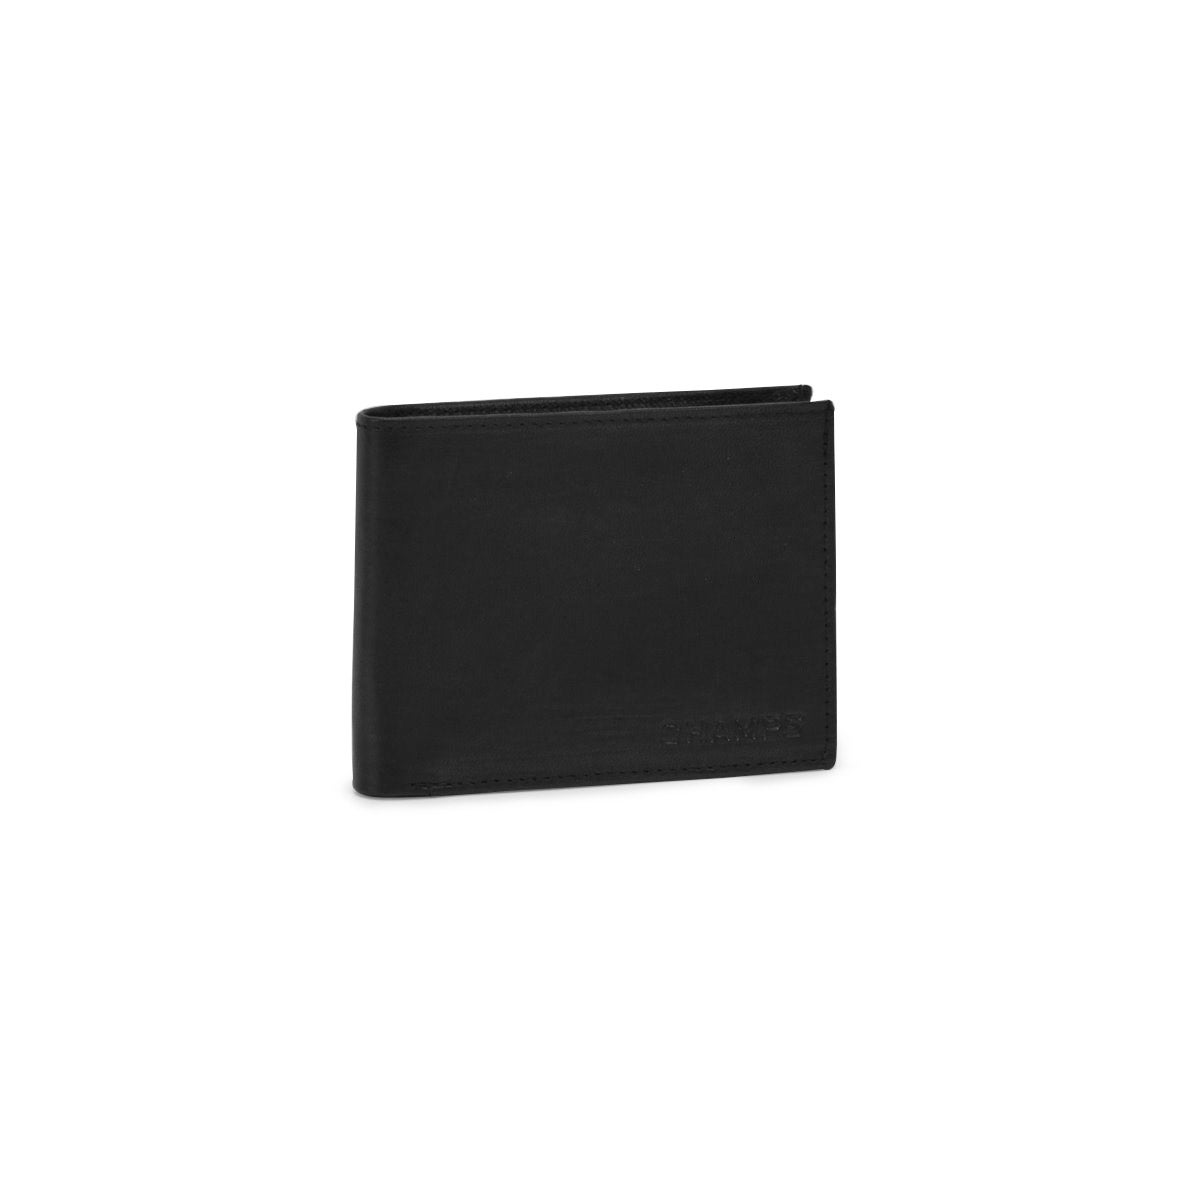 Mns black sheep leather wallet